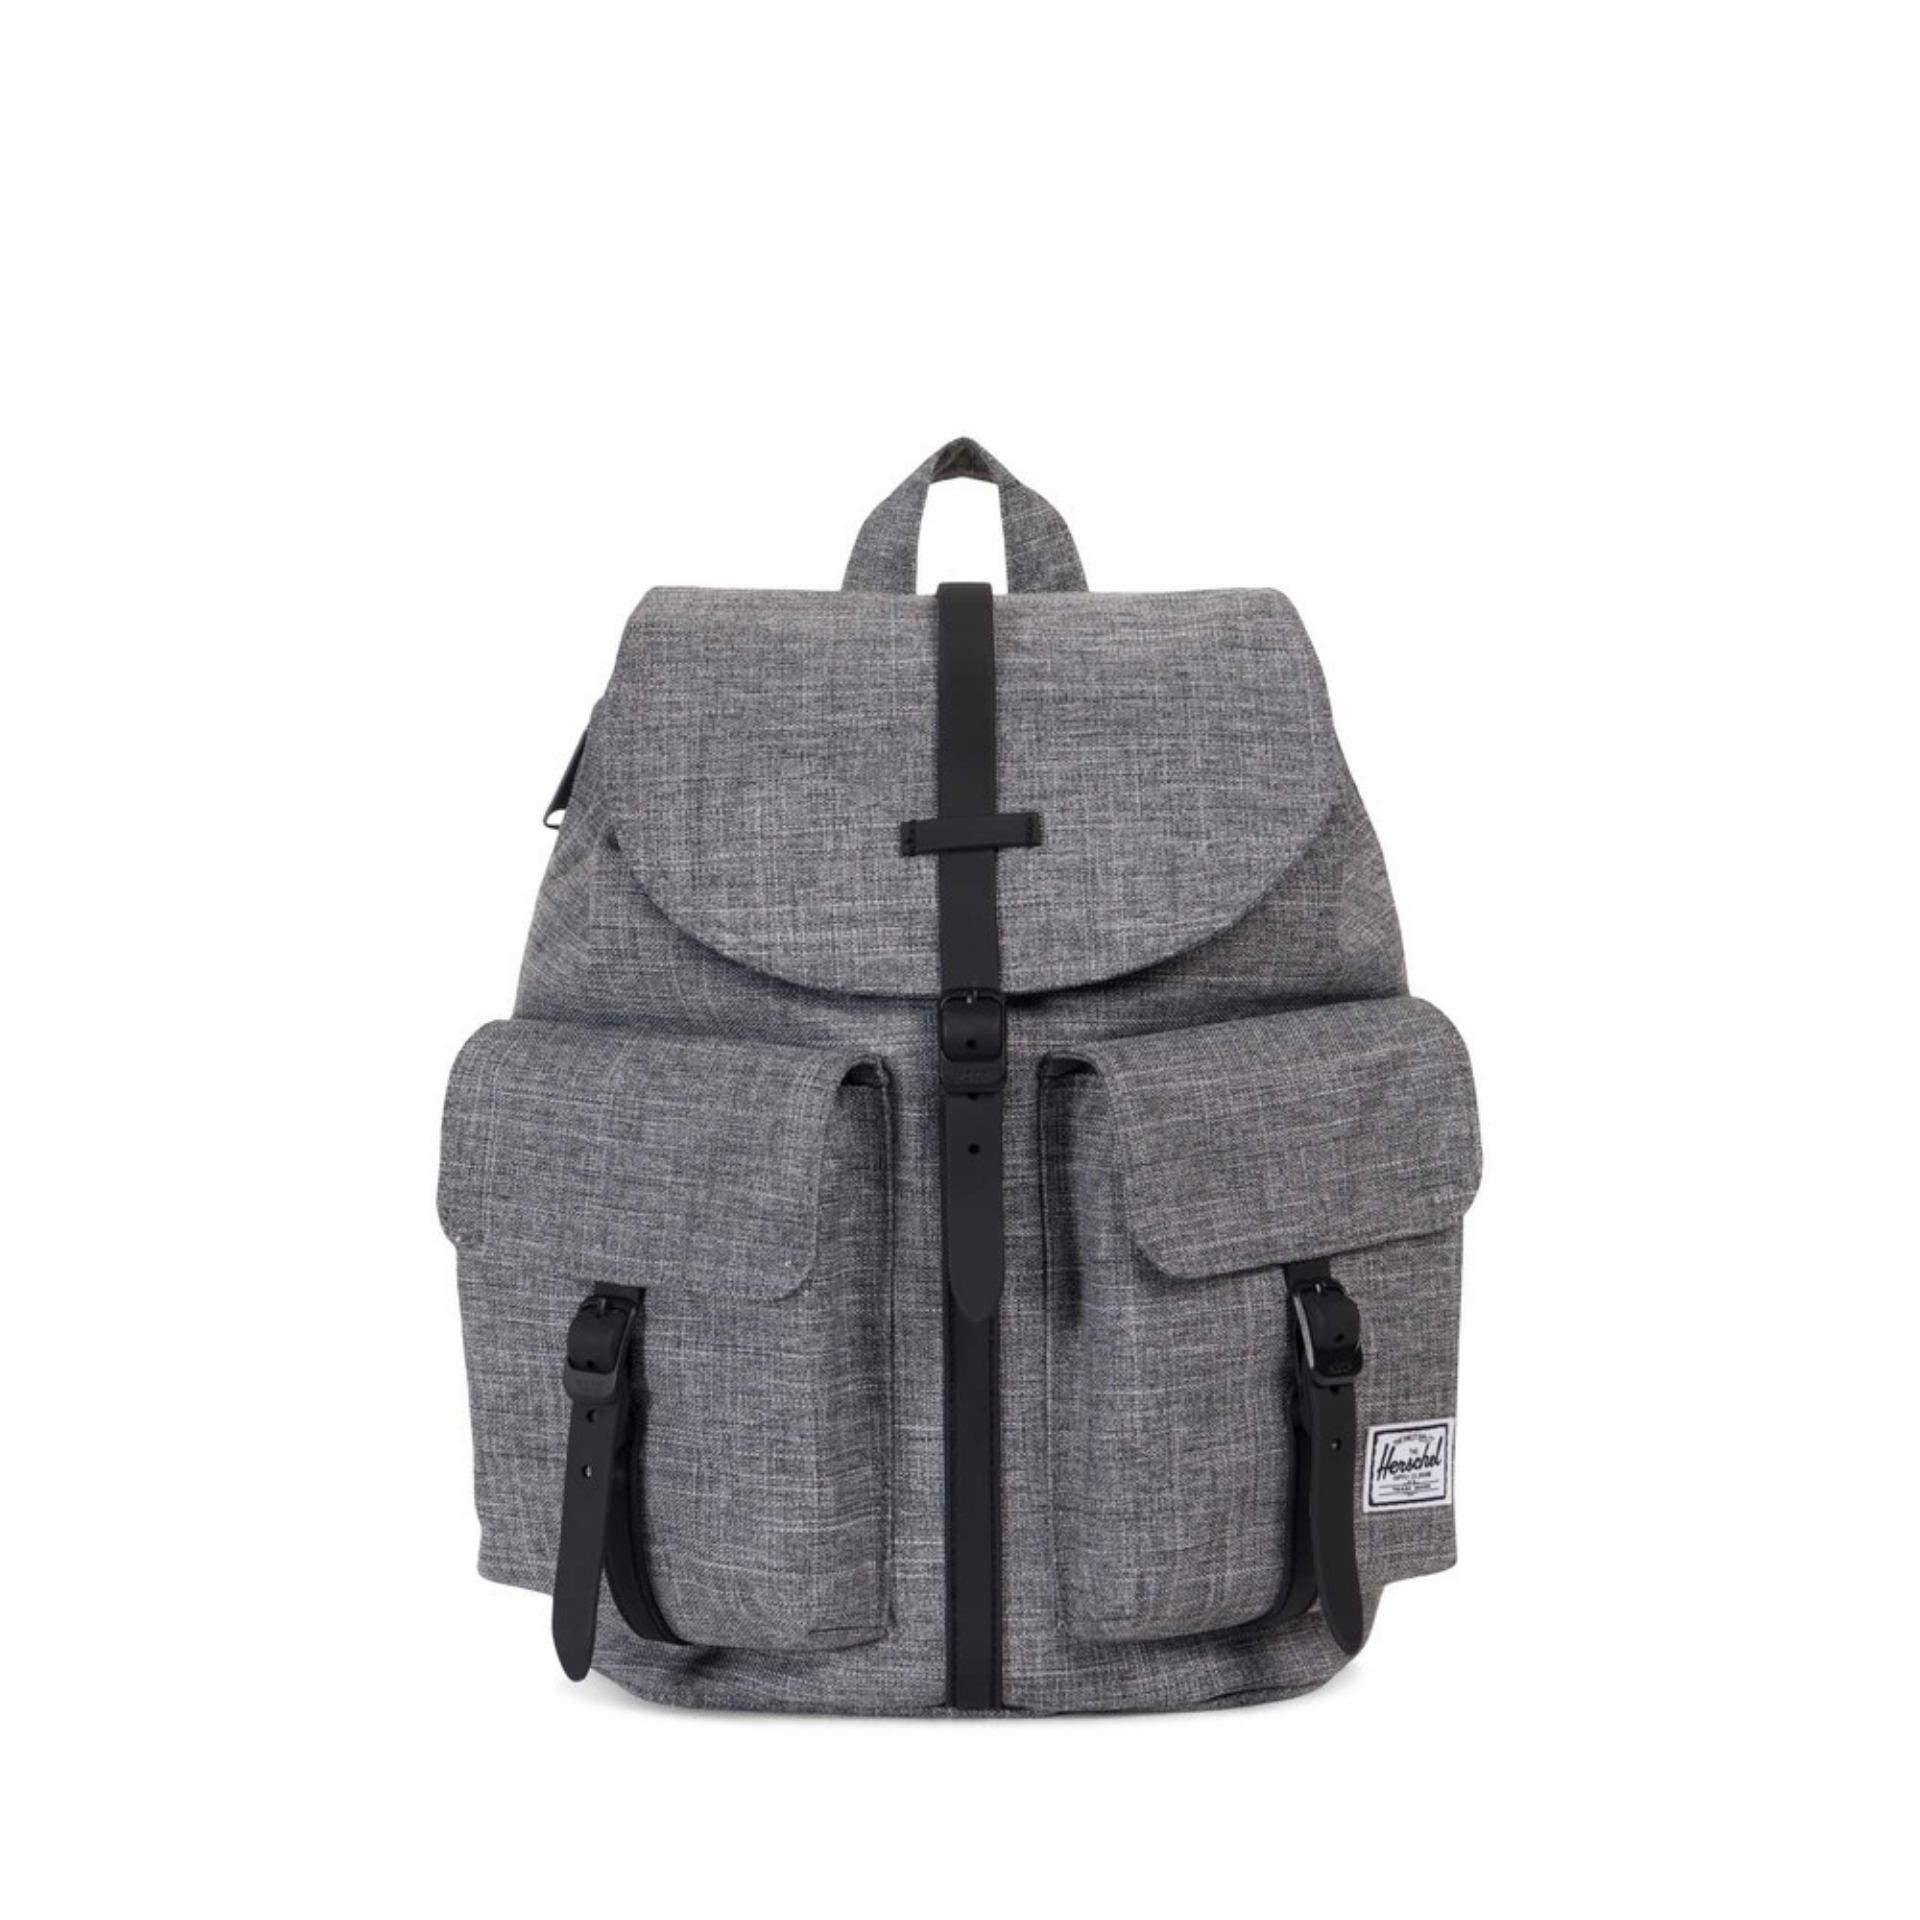 b2448a0964a Dawson Backpack Raven Crosshatch price in Singapore